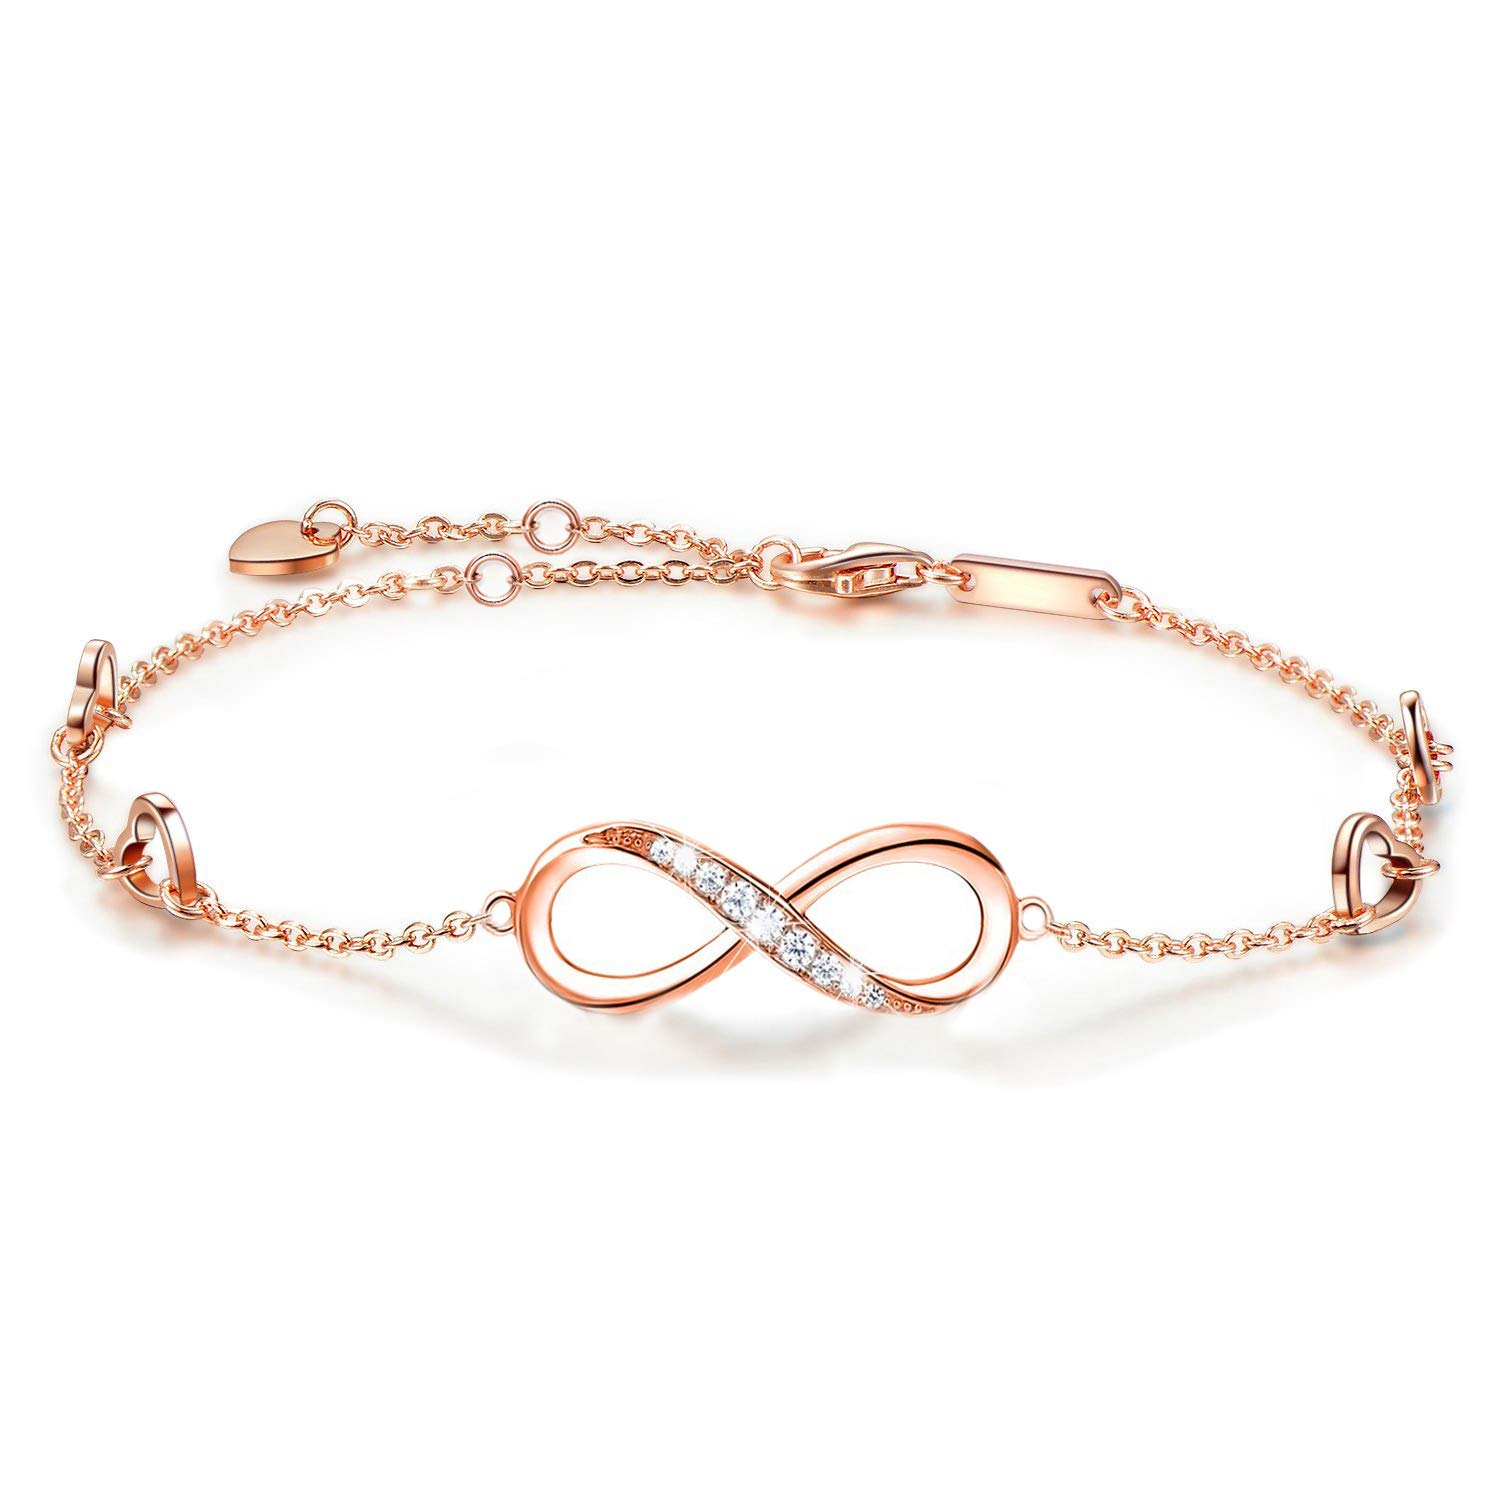 ANGELFLY Anklet Sterling Silver Infinity Heart Endless Love Symbol Charm Foot Rose Gold Adjustable Anklets Ankle Bracelets for Women Gift for Mother's Day (Rose Gold Infinity Anklets)